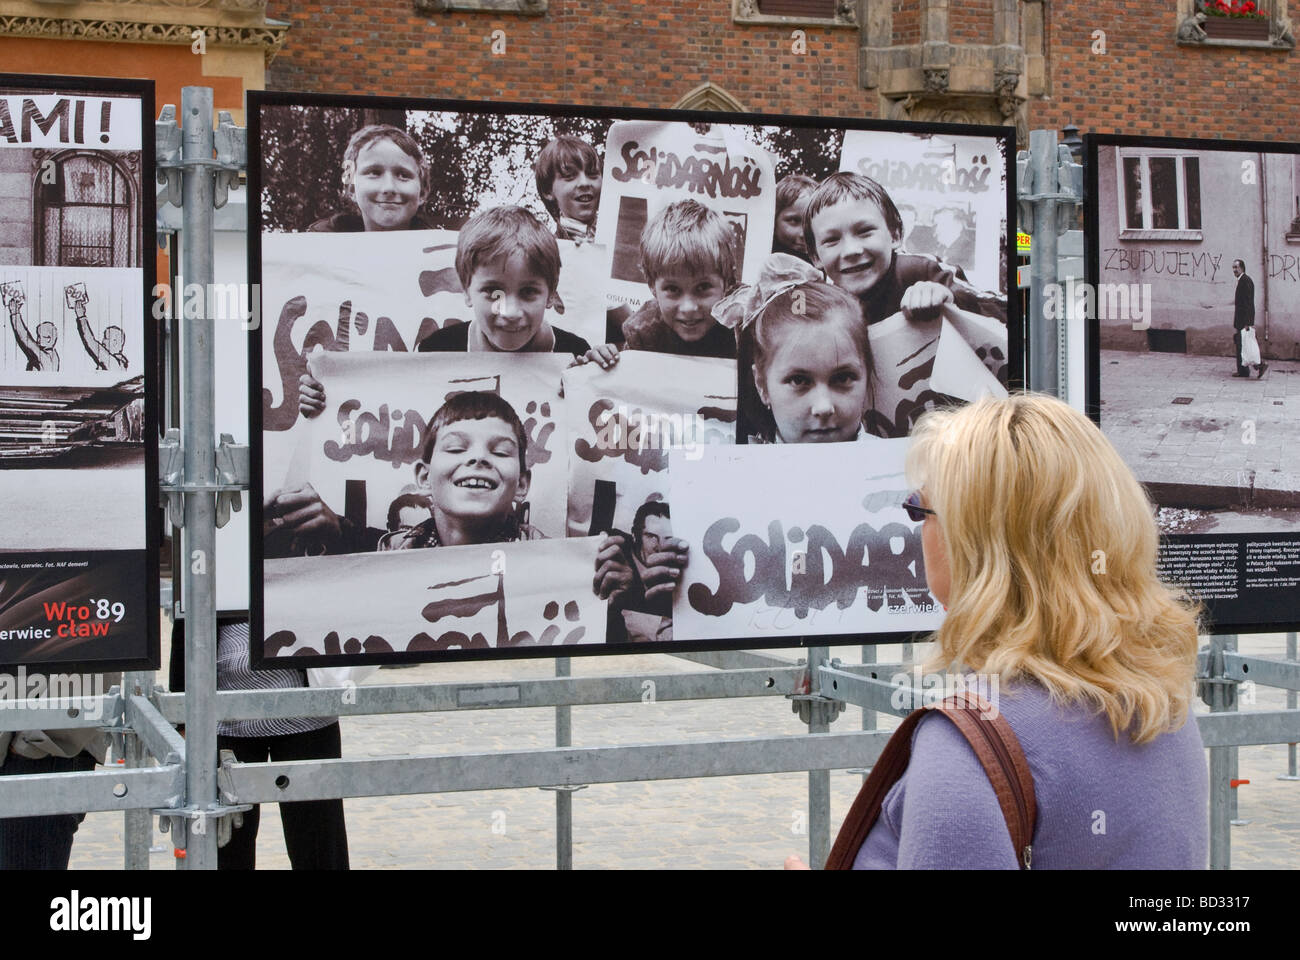 Children with SOLIDARITY signs in historic photos, Wrocław June 1989, communism collapse, displayed June 2009 in - Stock Image